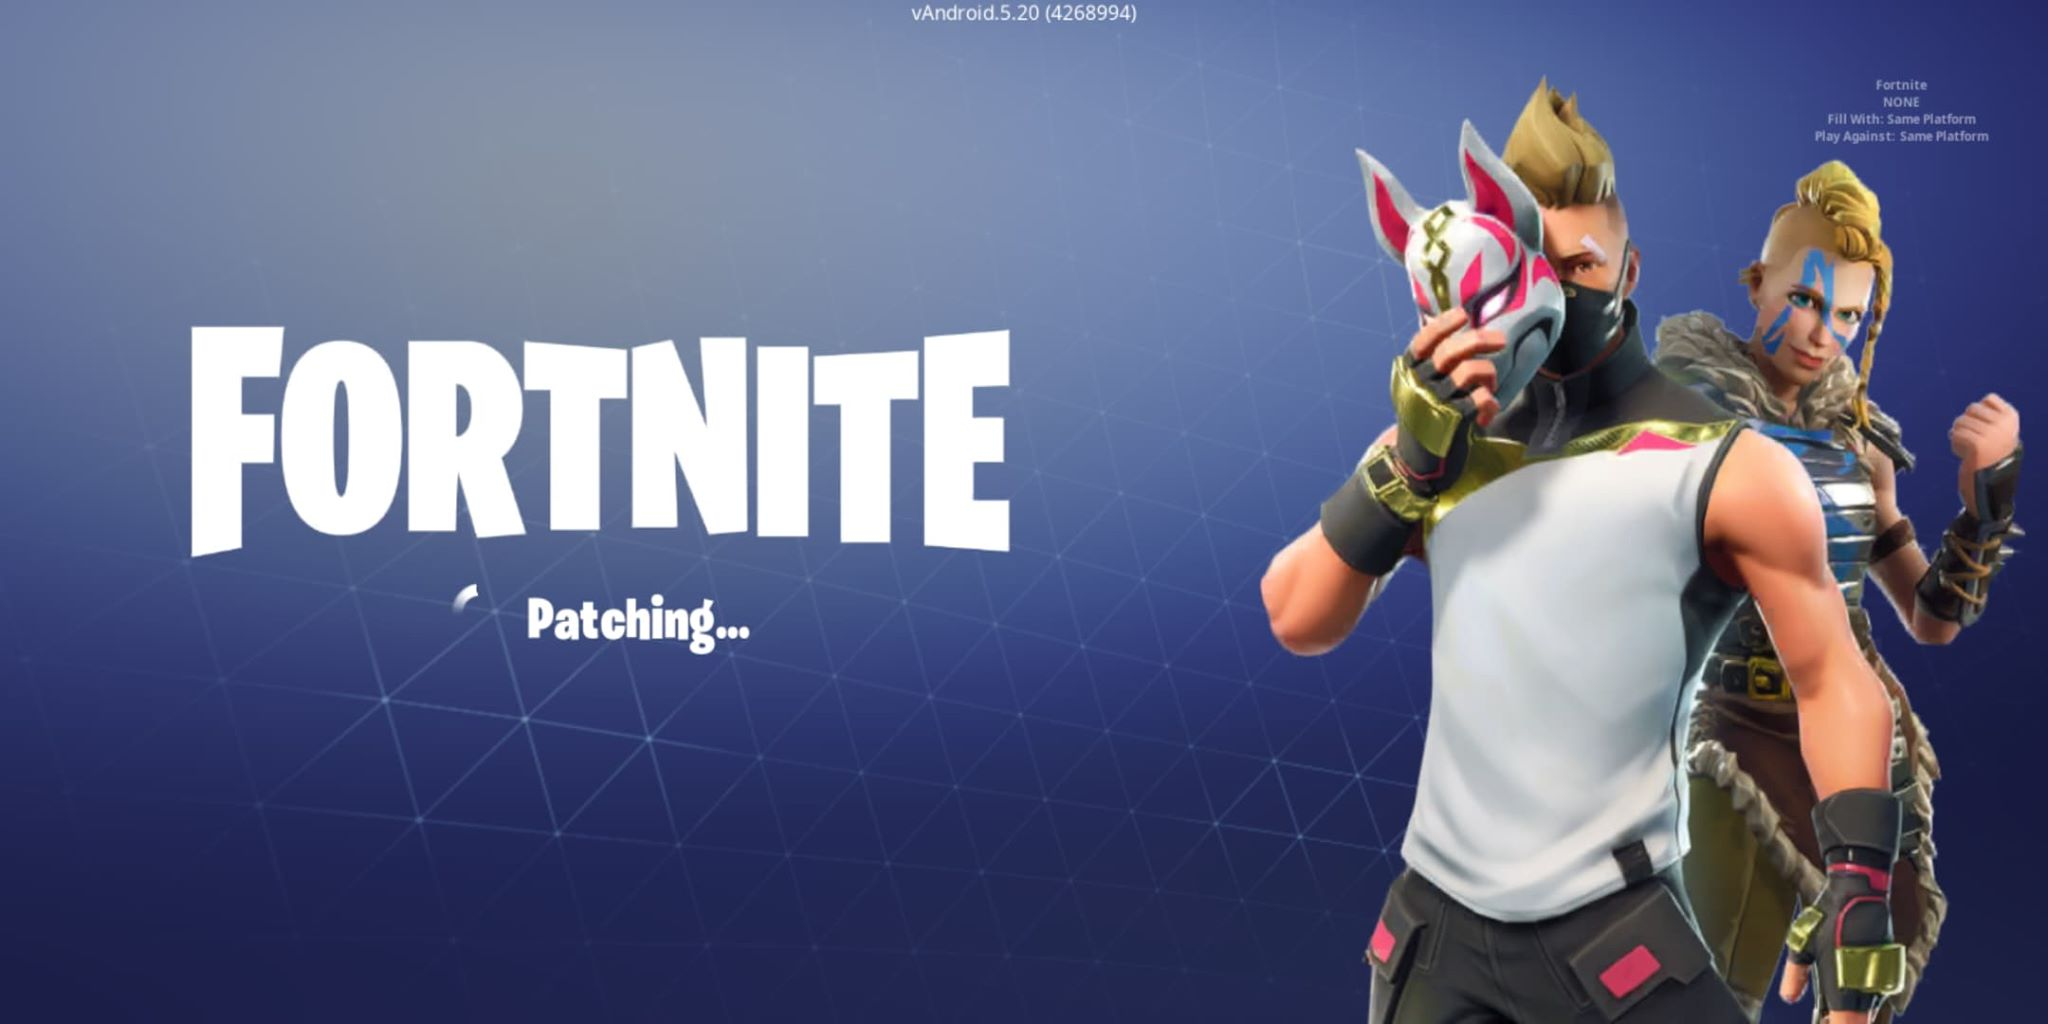 Download Fortnite Battle Royale Mod Apk for all Android